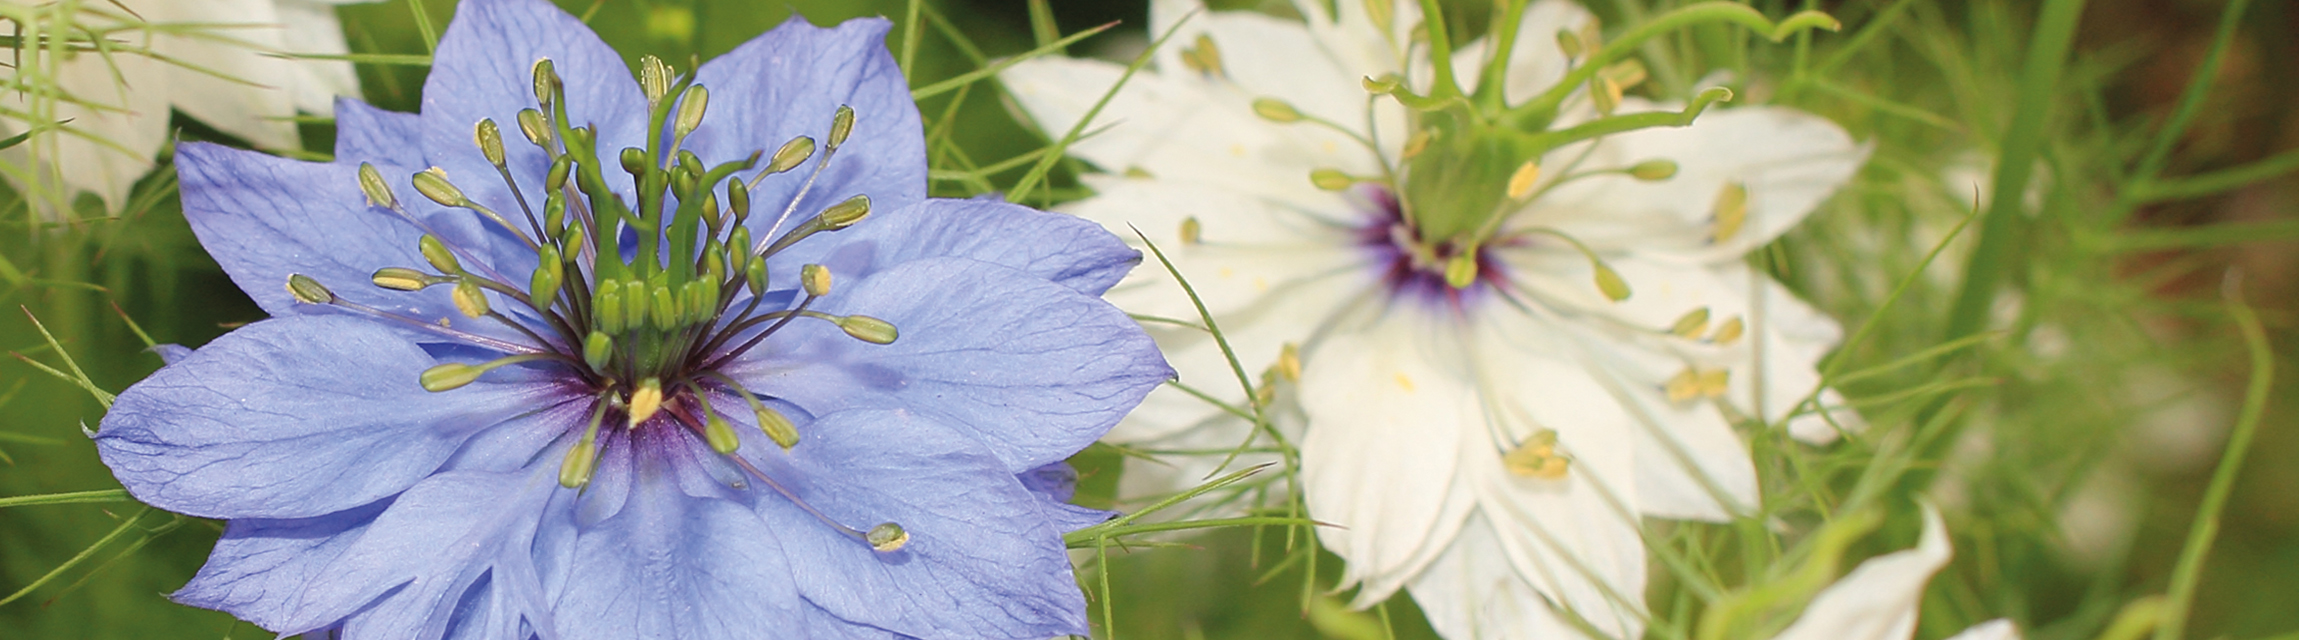 Essenz 2019: Nigella sativa